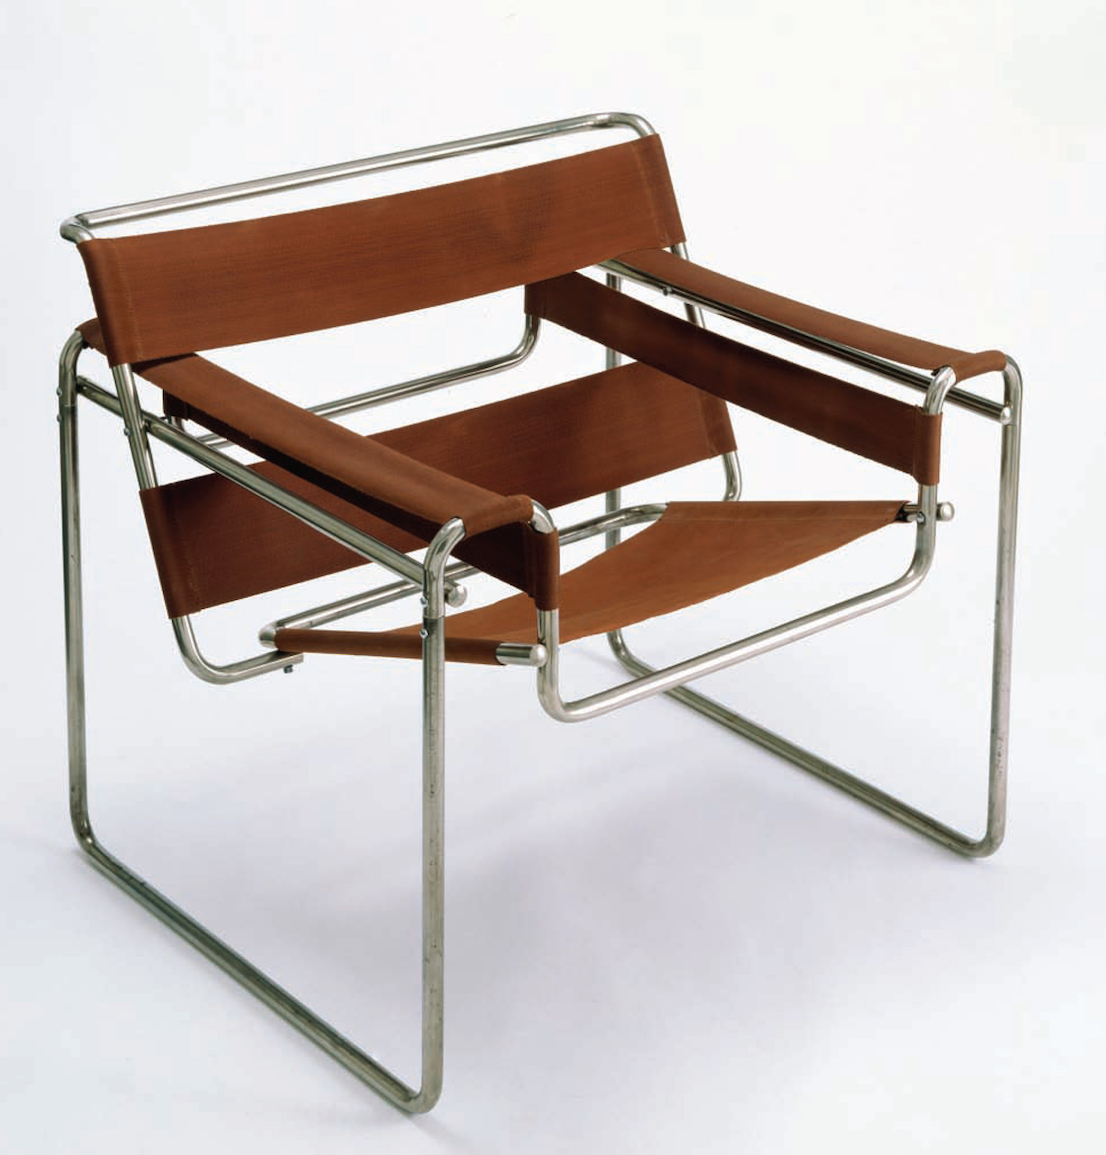 Model B3, design di/by Marcel Breuer, 1925-1926. Courtesy: Victoria and Albert Museum, London.